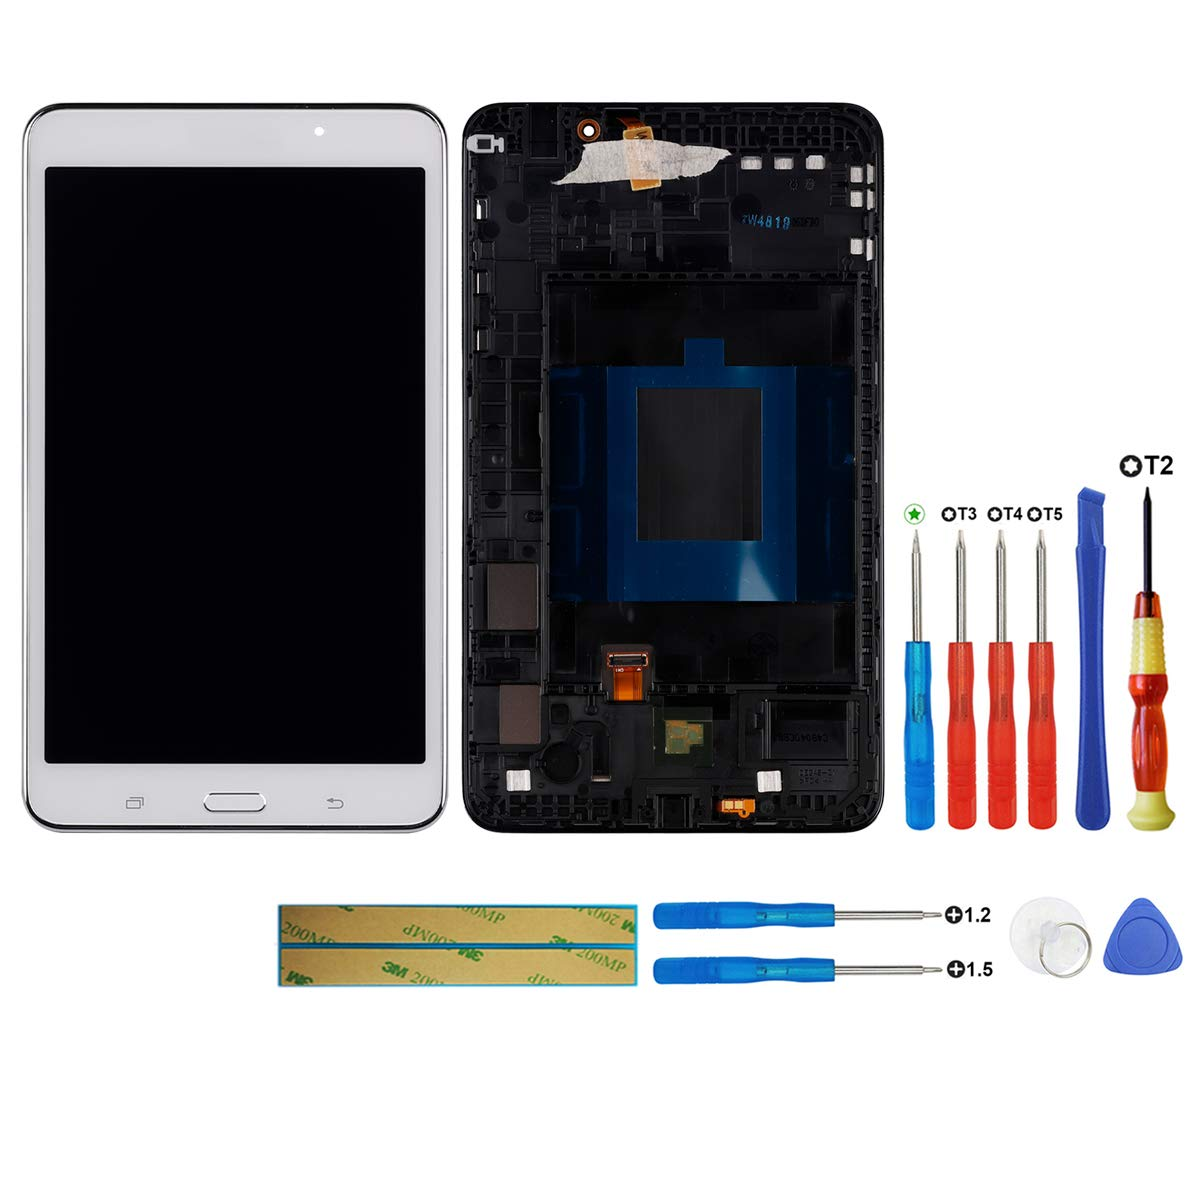 swark LCD Display Compatible with Samsung Galaxy Tab 4 SM-T230 T230 7.0 inch White with Frame Touchscreen Digitizer Assembly + Tools